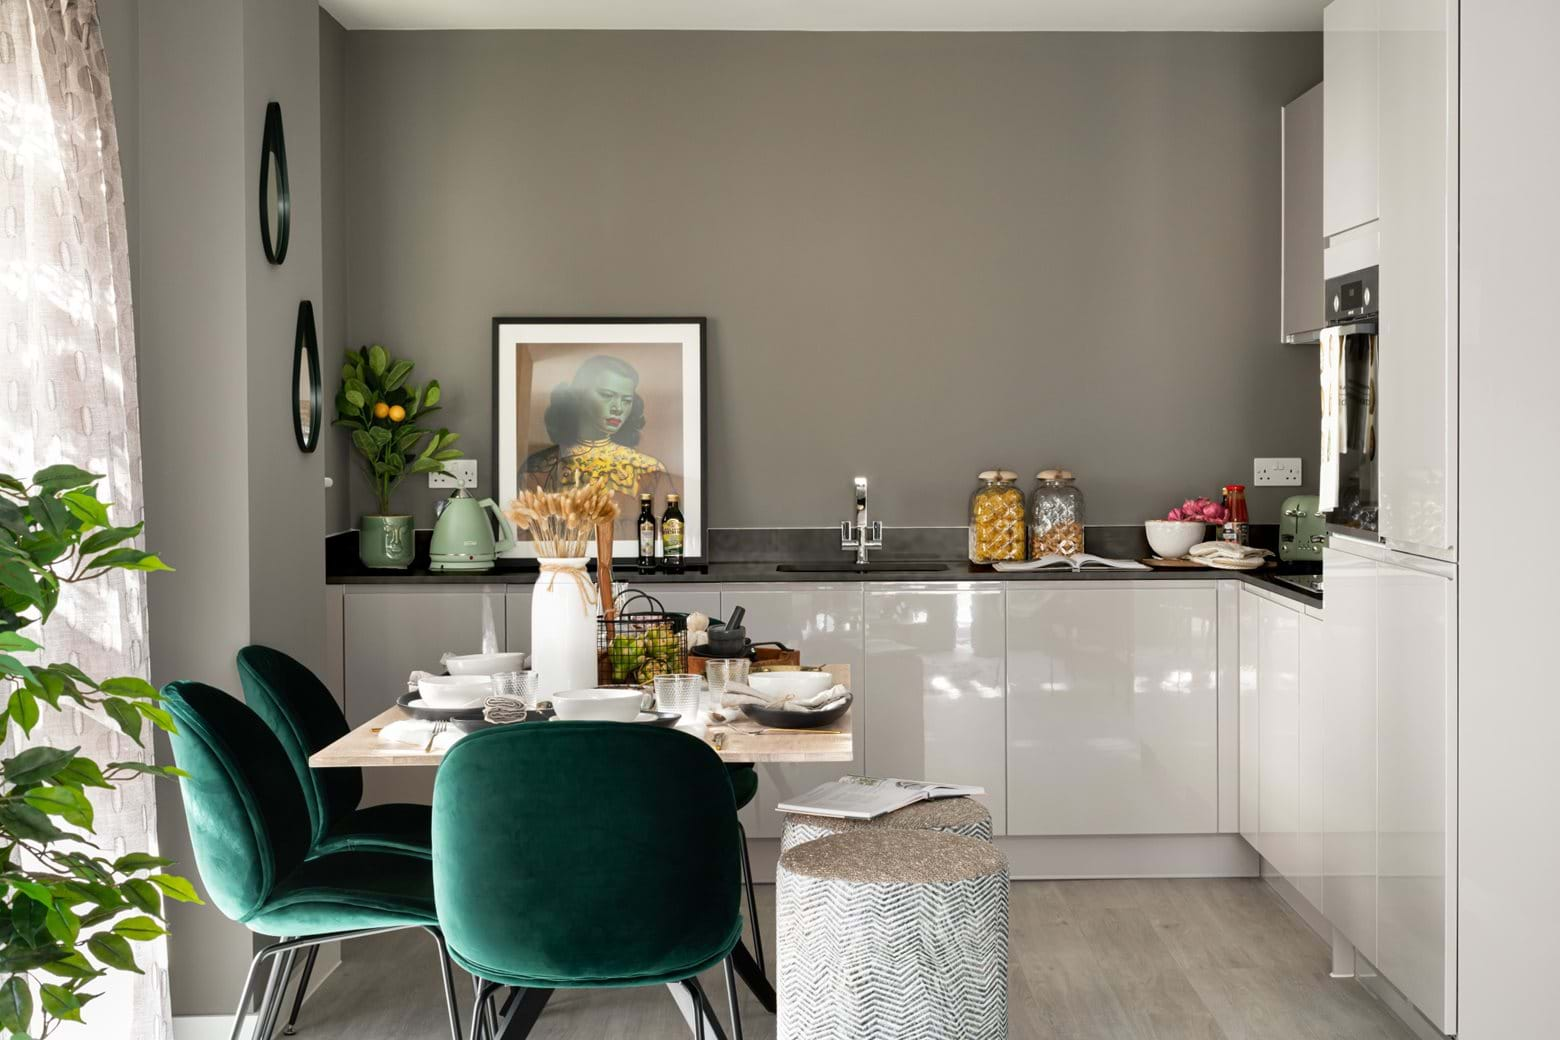 The Pomeroy | Shared Ownership - Kitchen Area